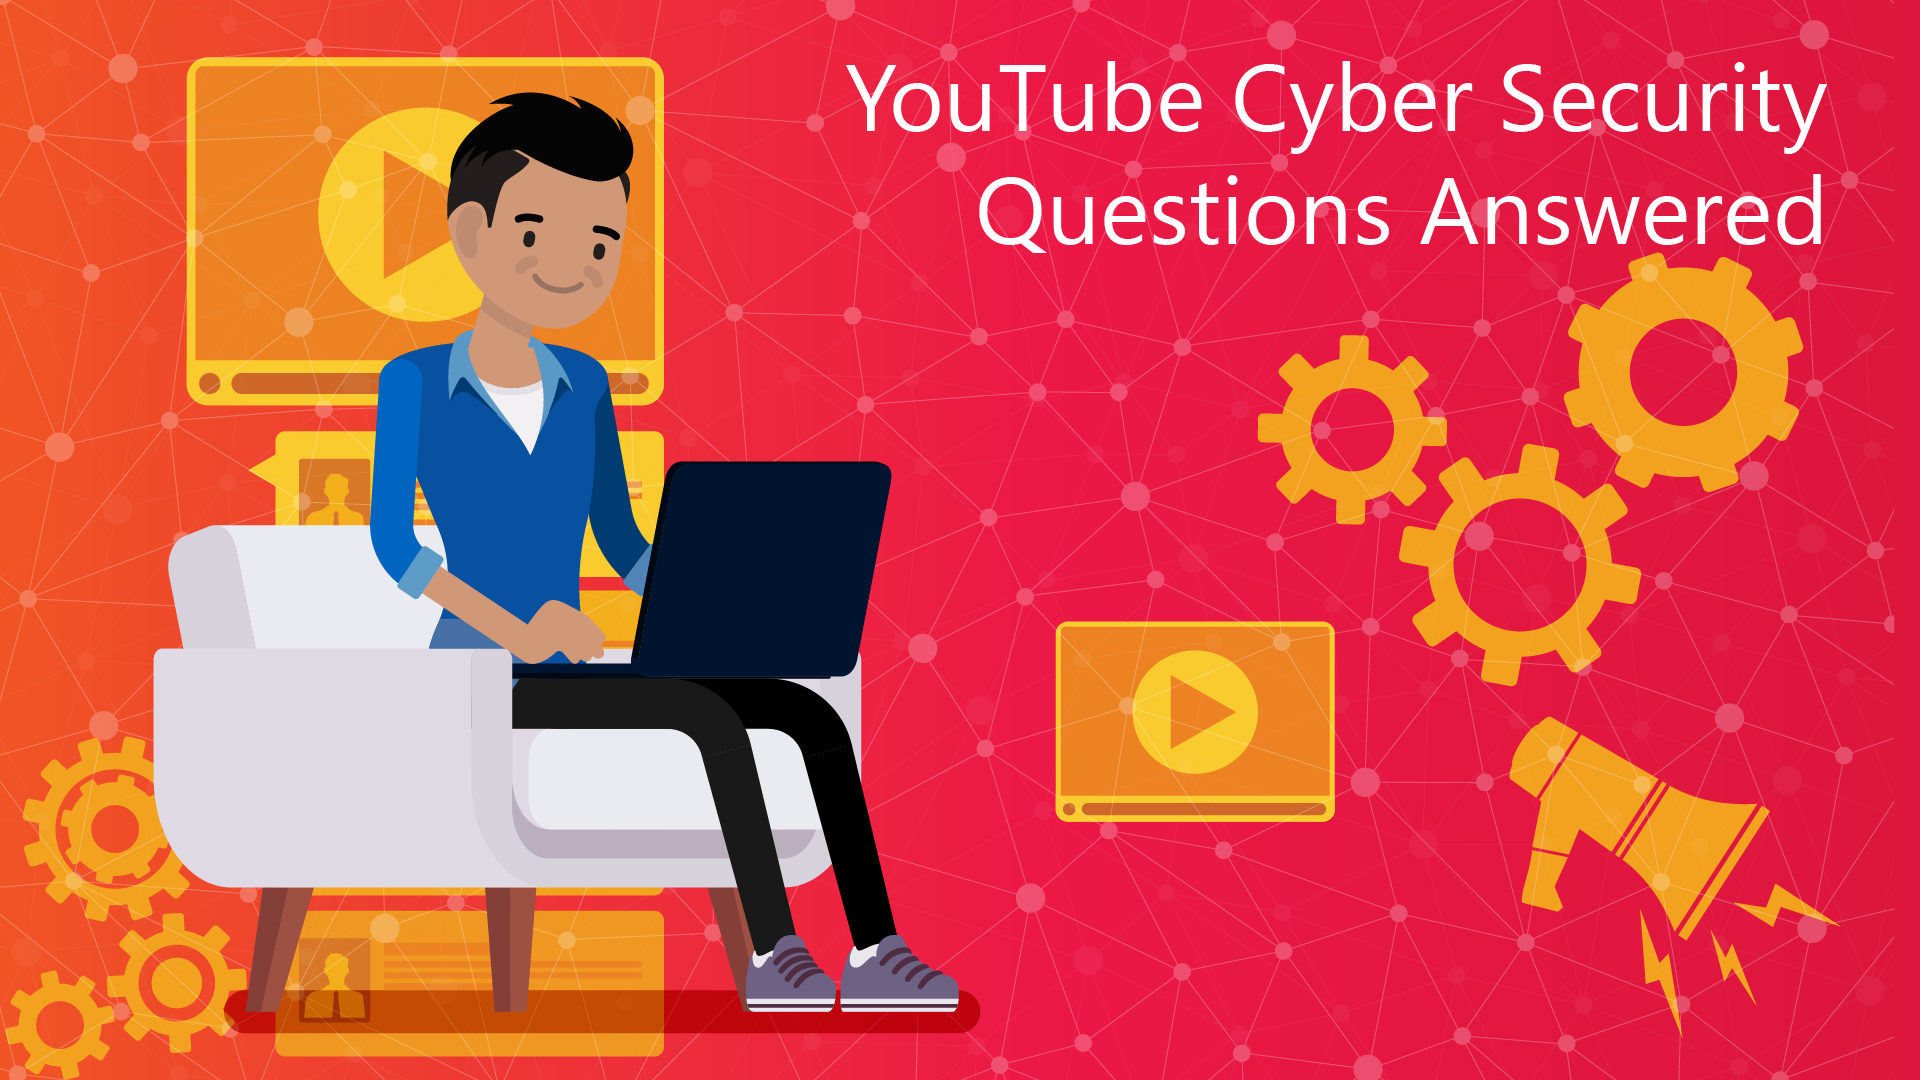 YouTube Cyber Security Questions